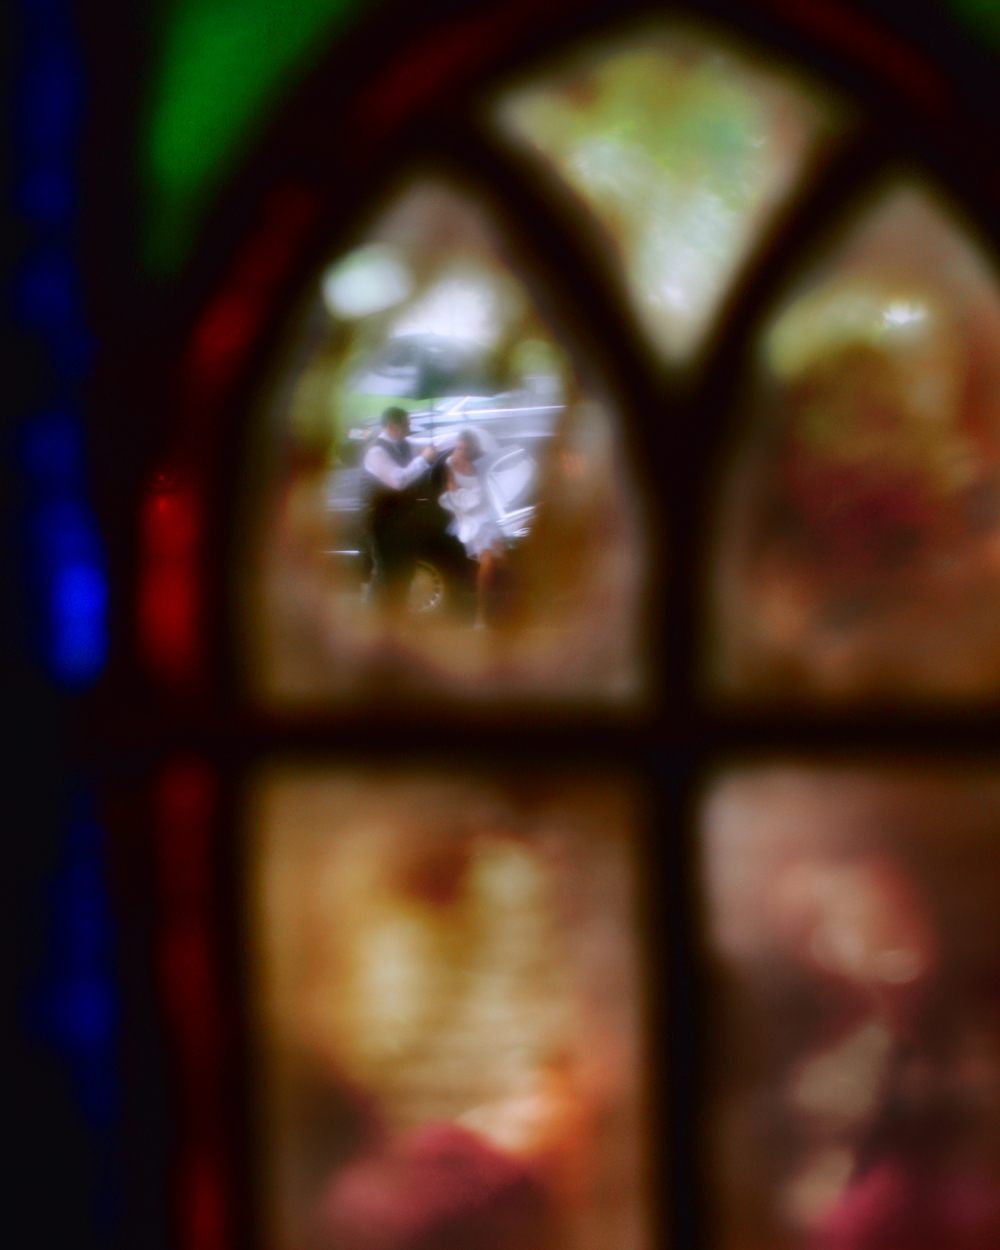 A bride rushes in from the limo to the church captured through a stained glass window in Connecticut. Moment captured by Maring Visuals